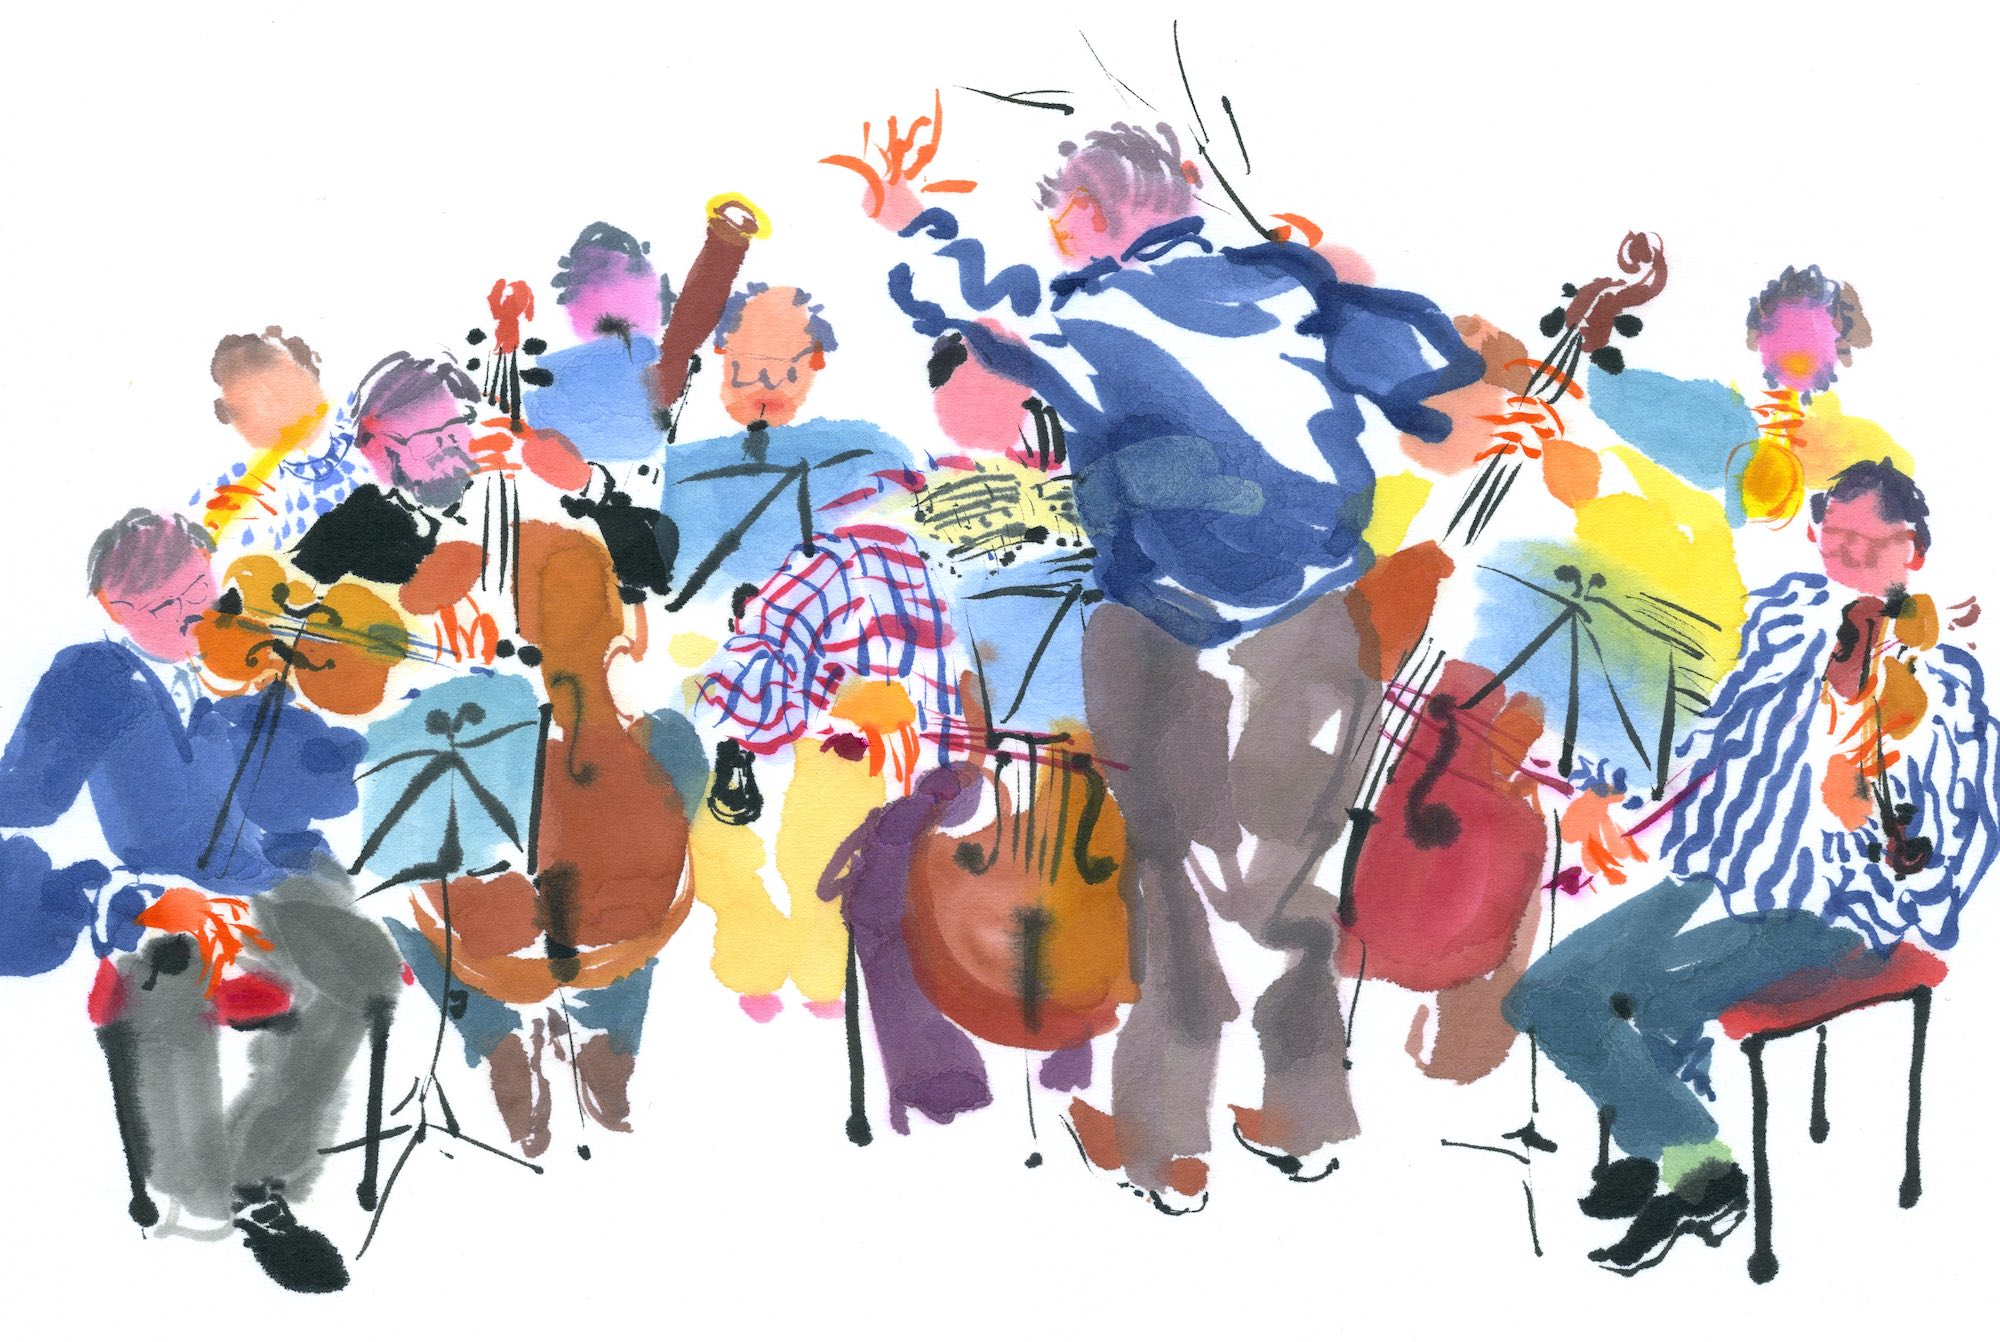 Chamber Orchestra image, © Mary Woodin. Kindly reproduced with permission